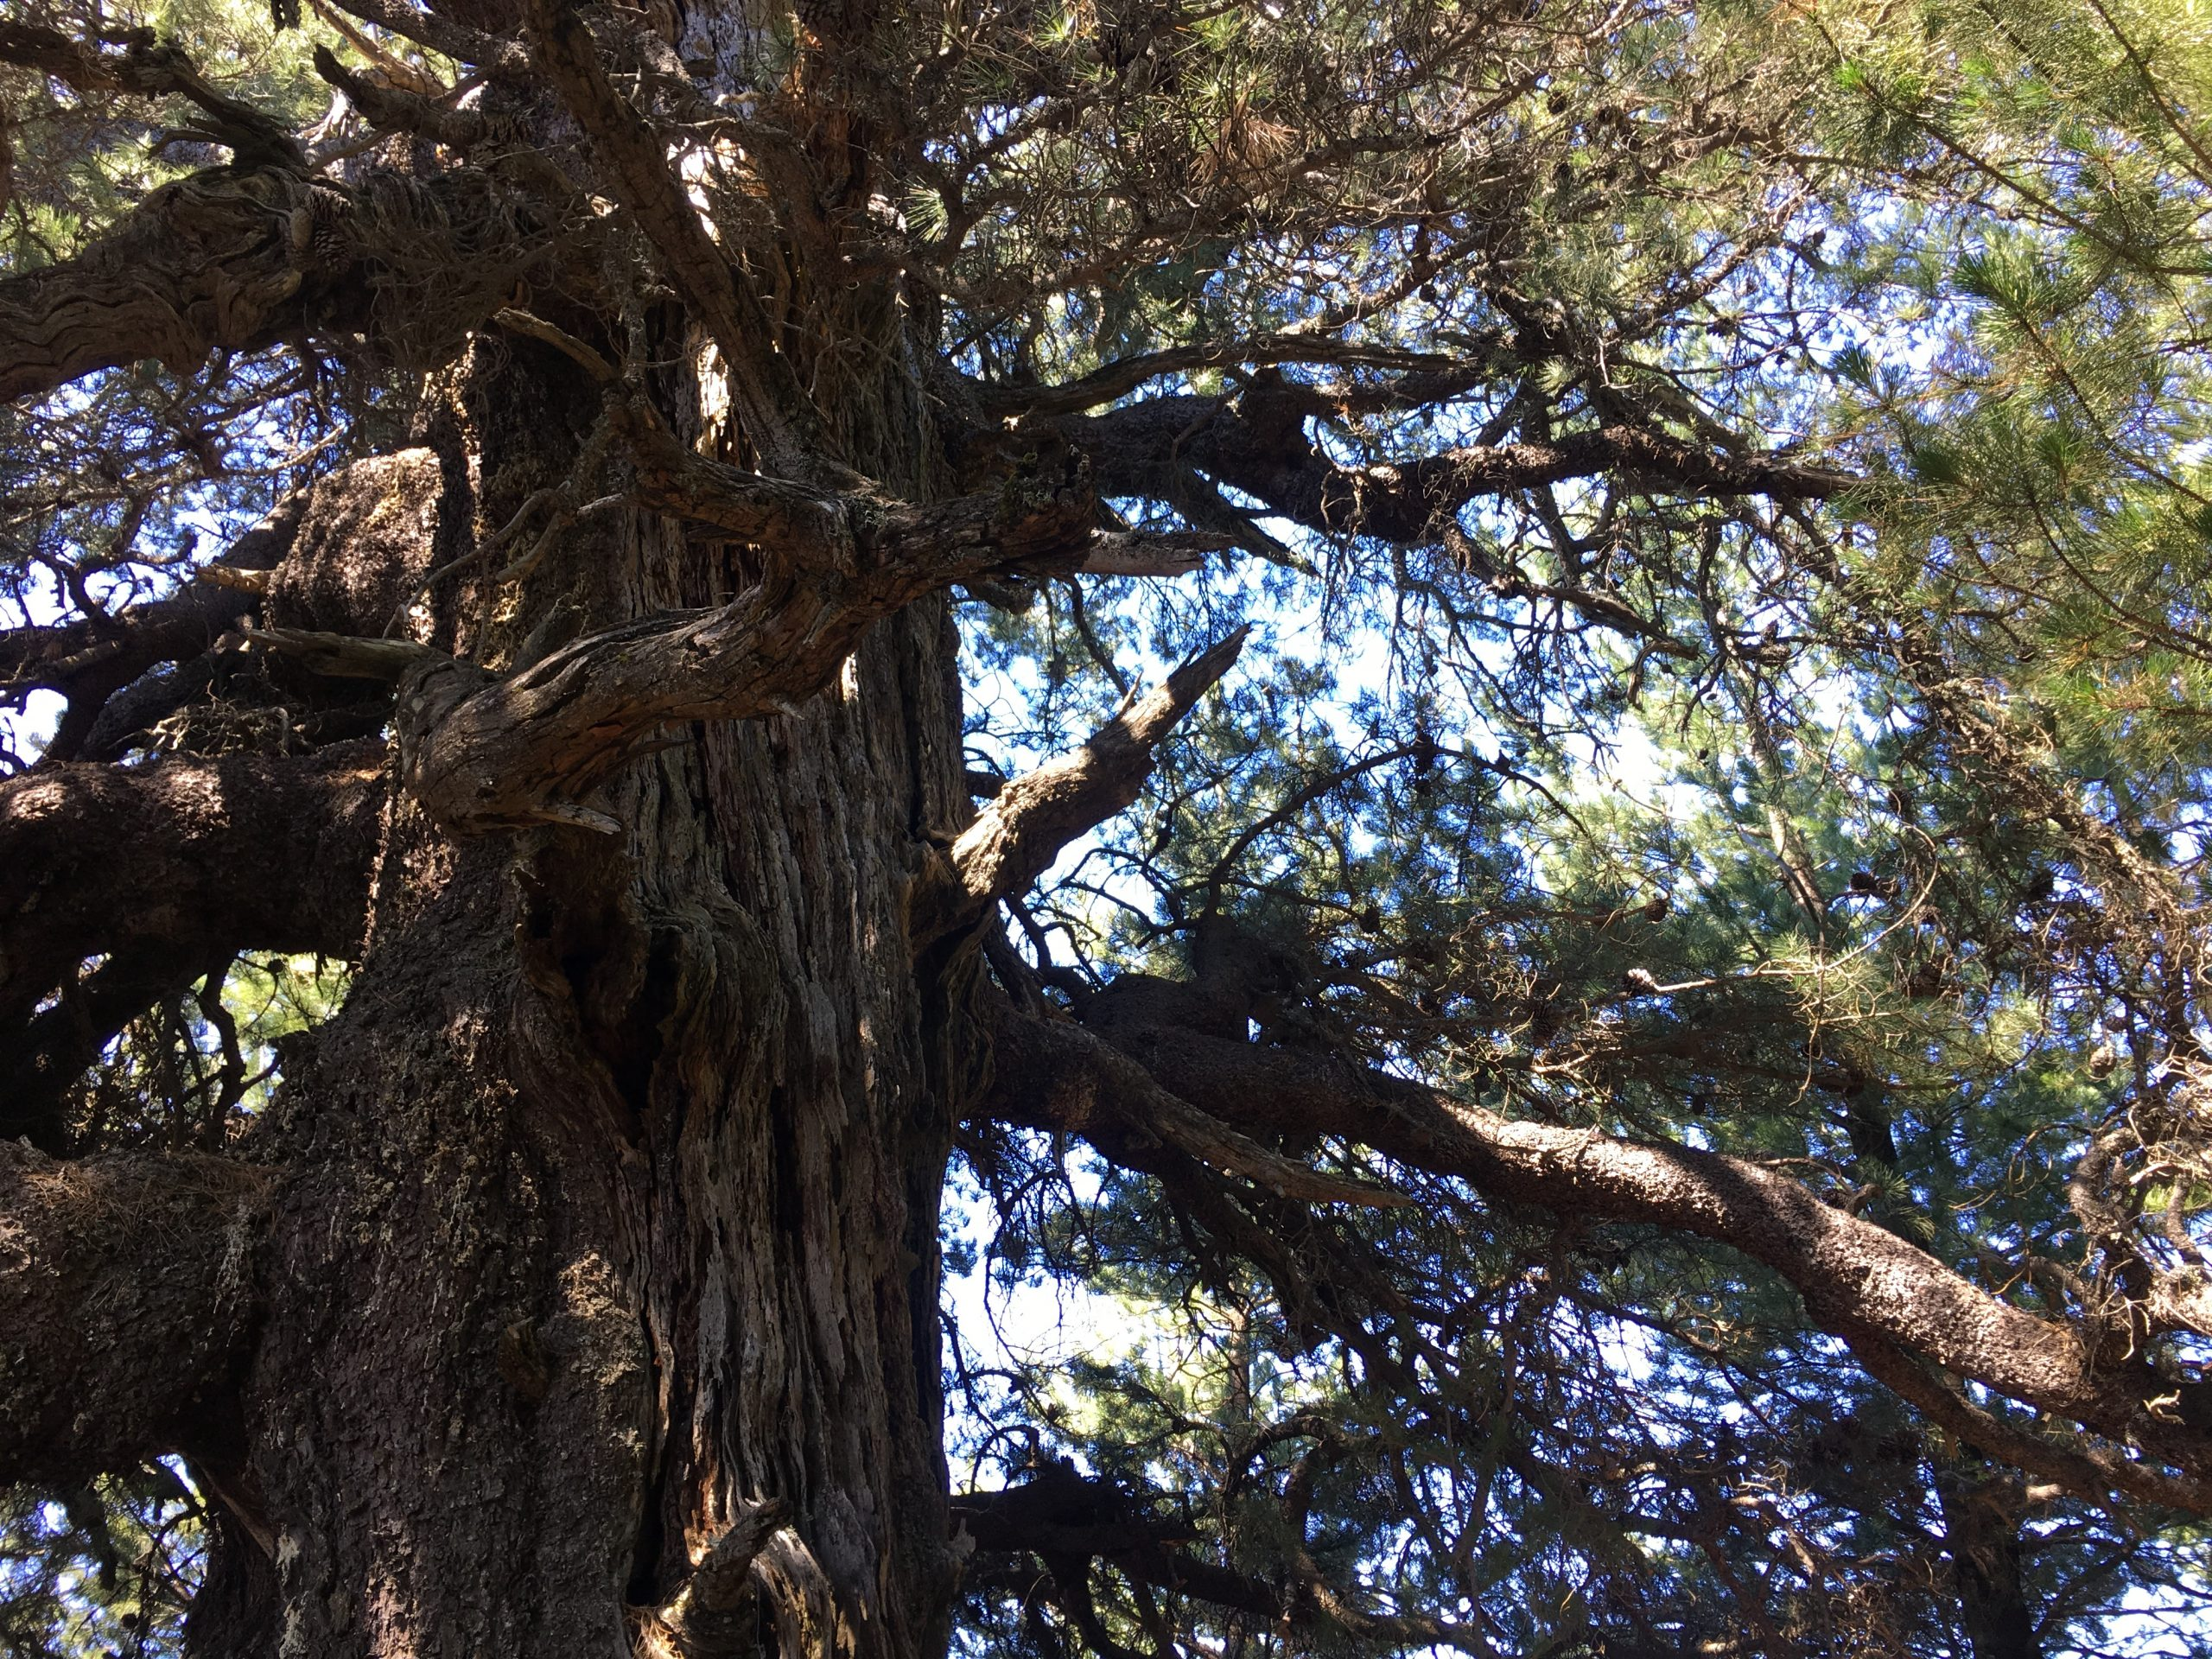 A pine that may be 200+ years old provides much of the seed used for the restoration.